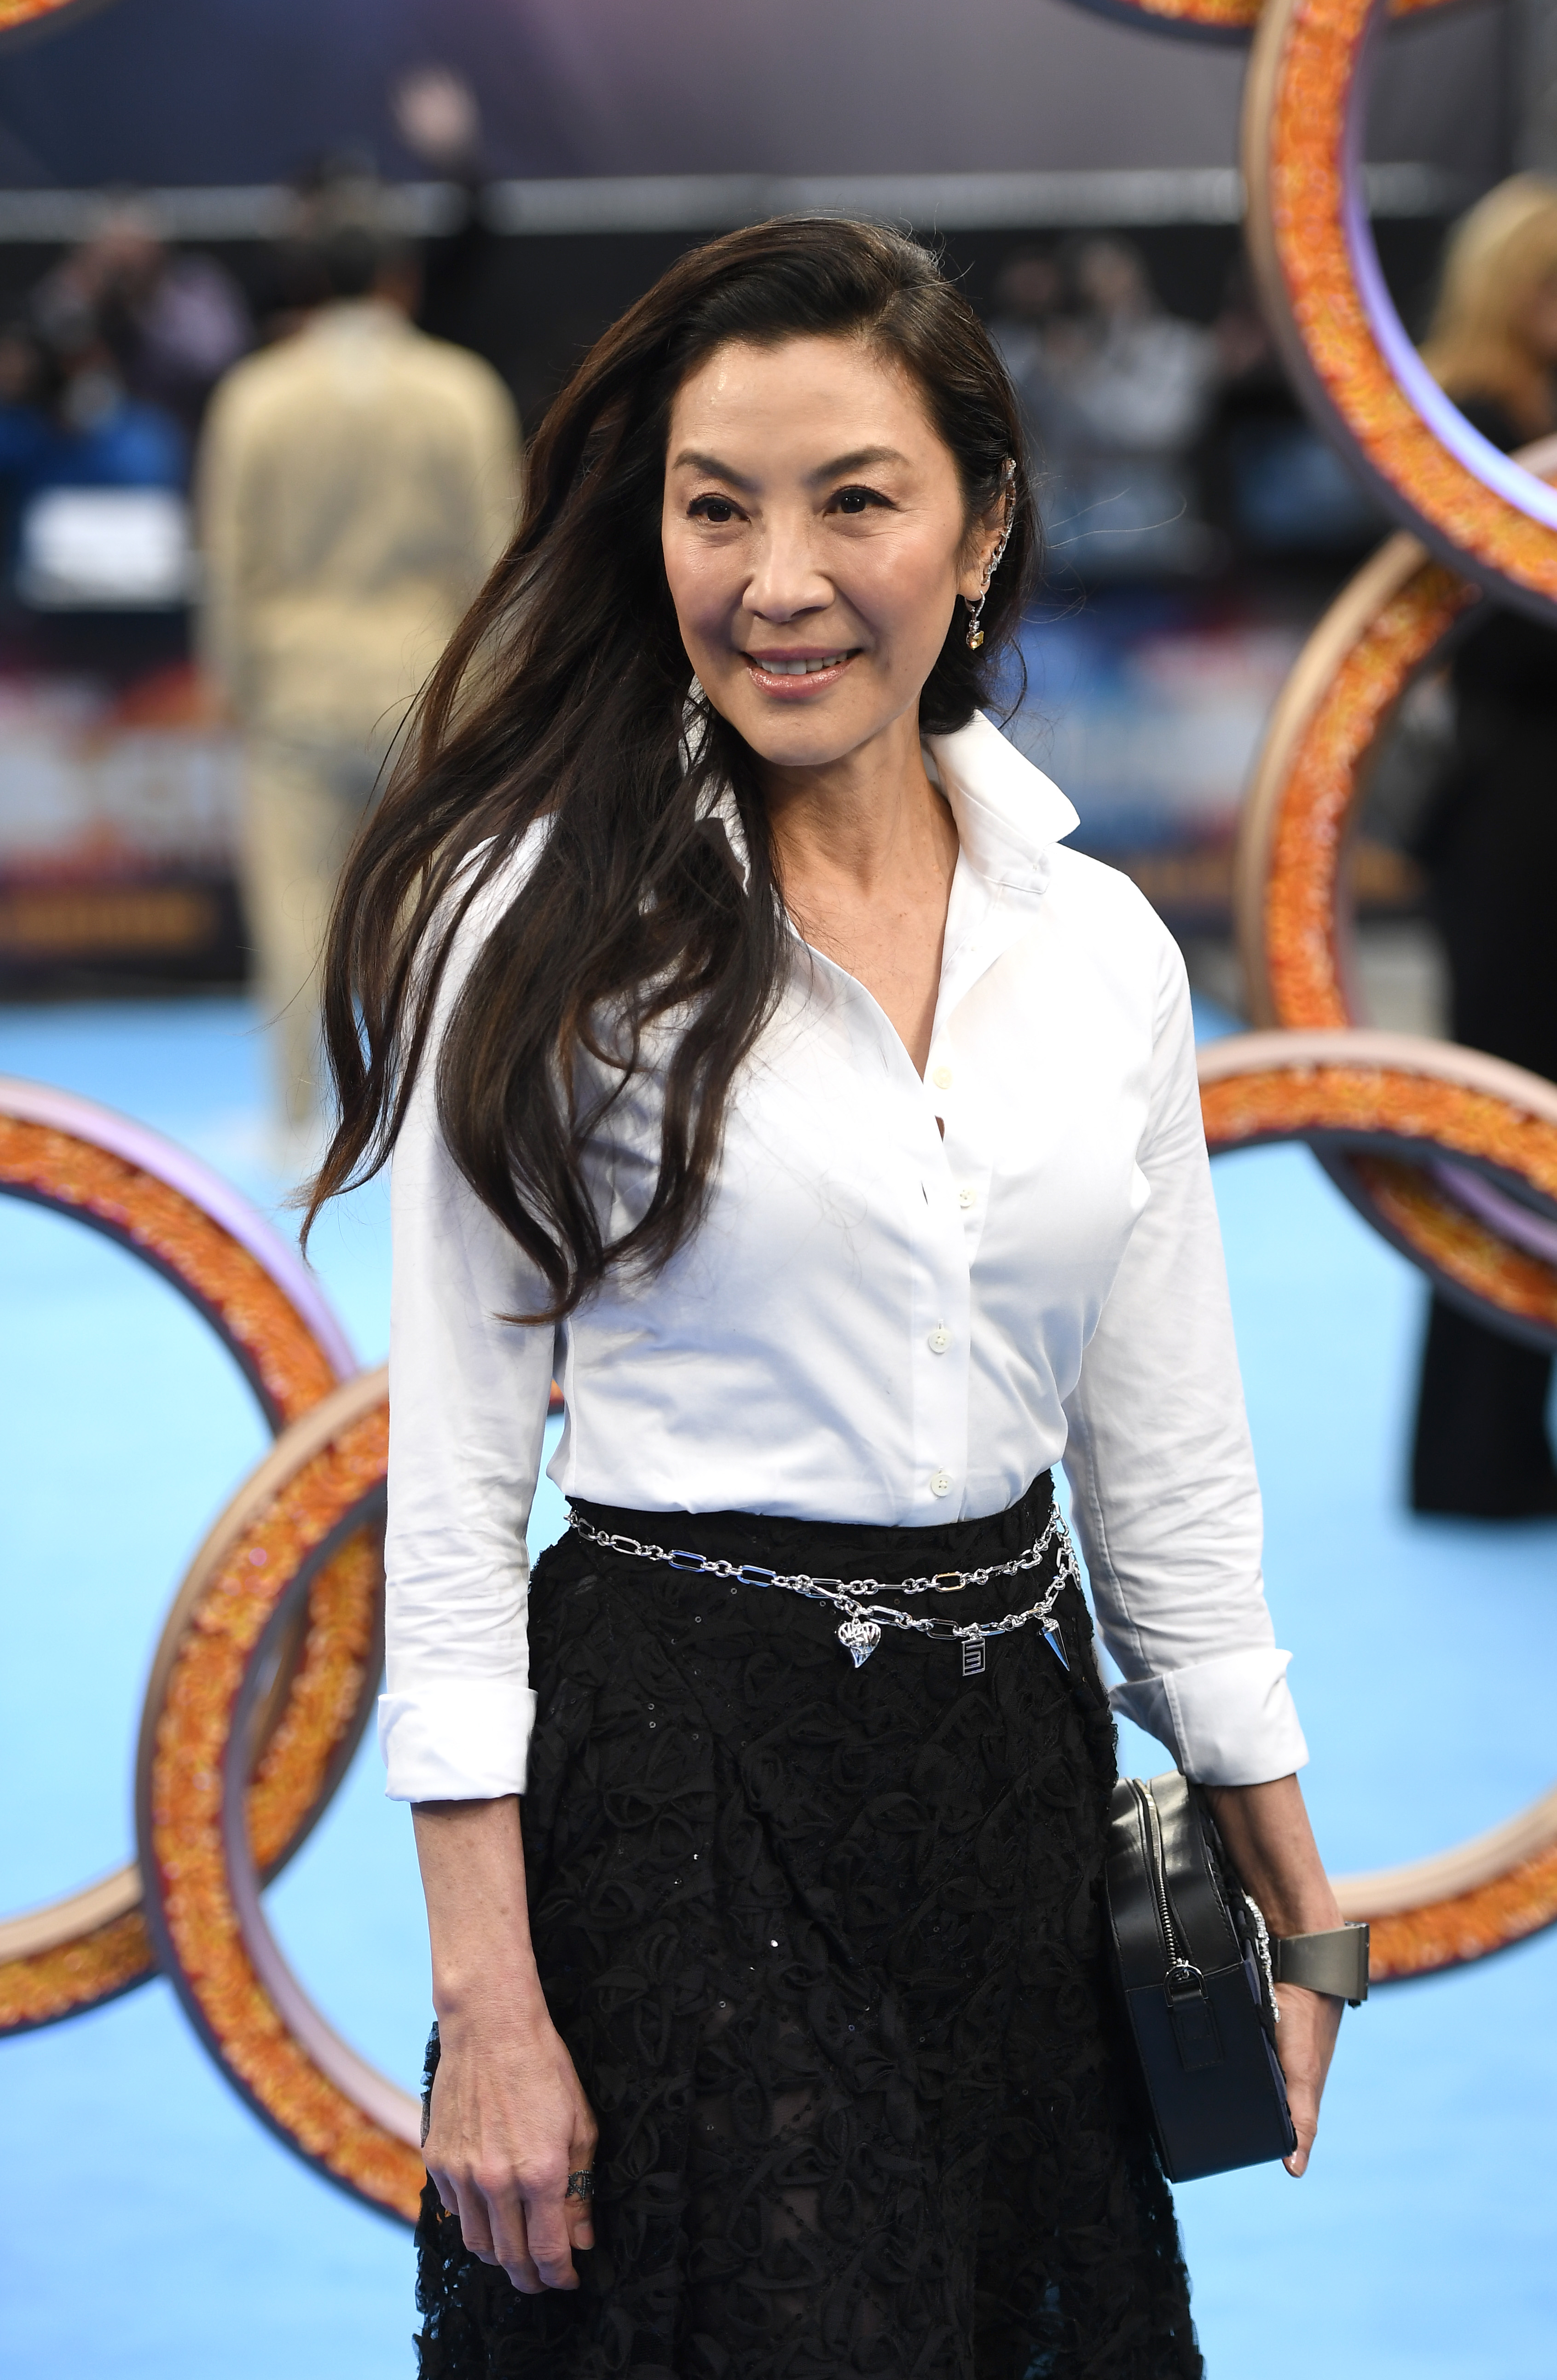 Michelle Yeoh at an event for Shang-Chi and the Legend of the Ten Rings (2021)